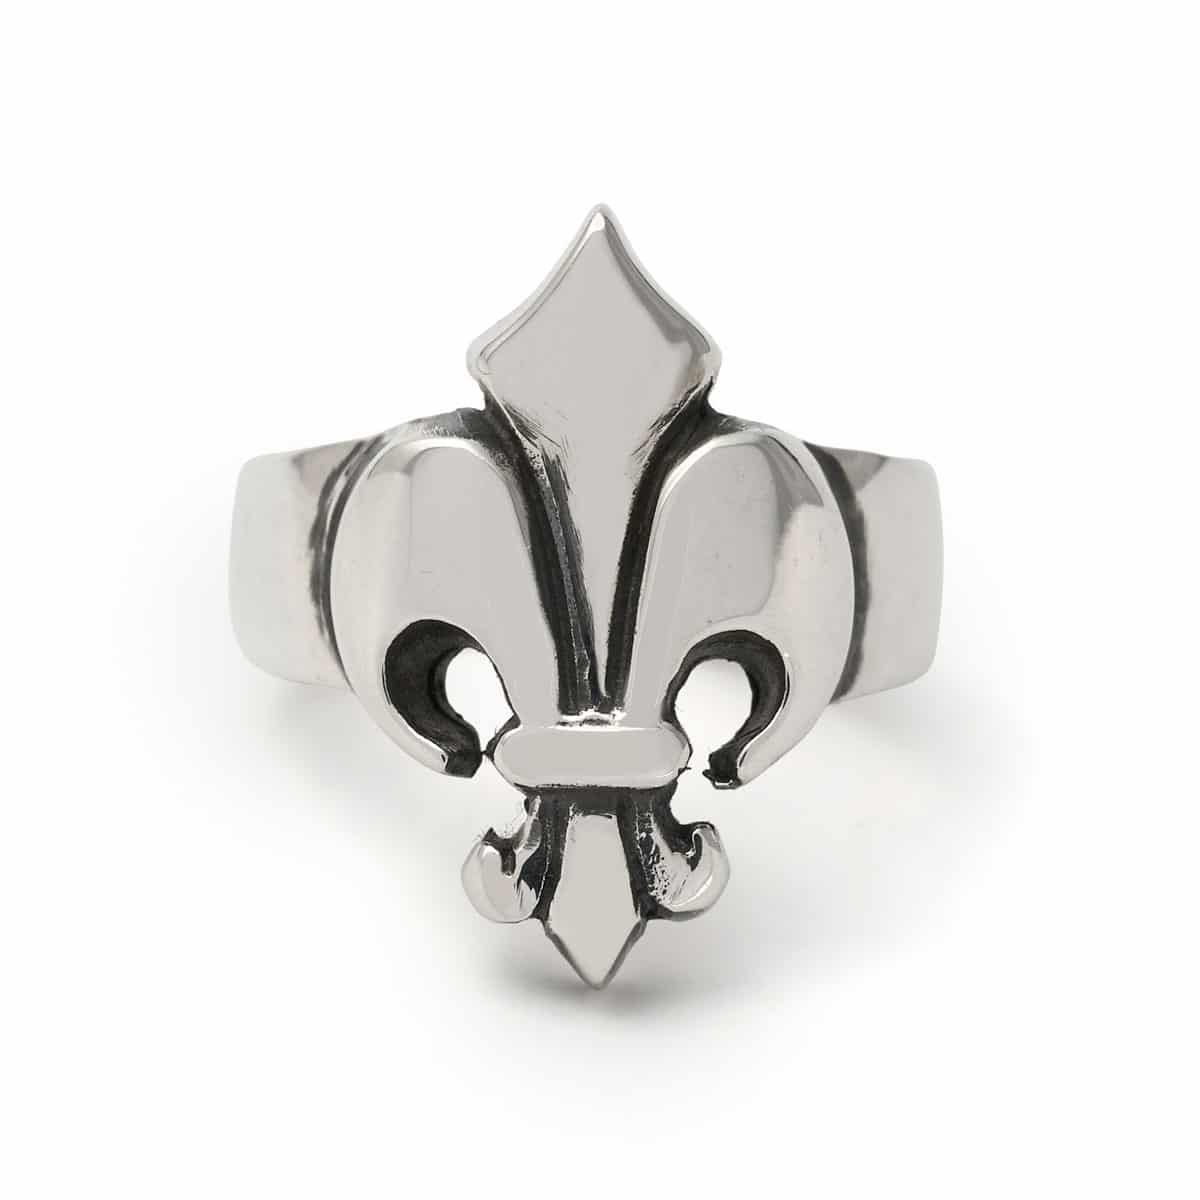 Small Fleur De Lis Ring The Great Frog